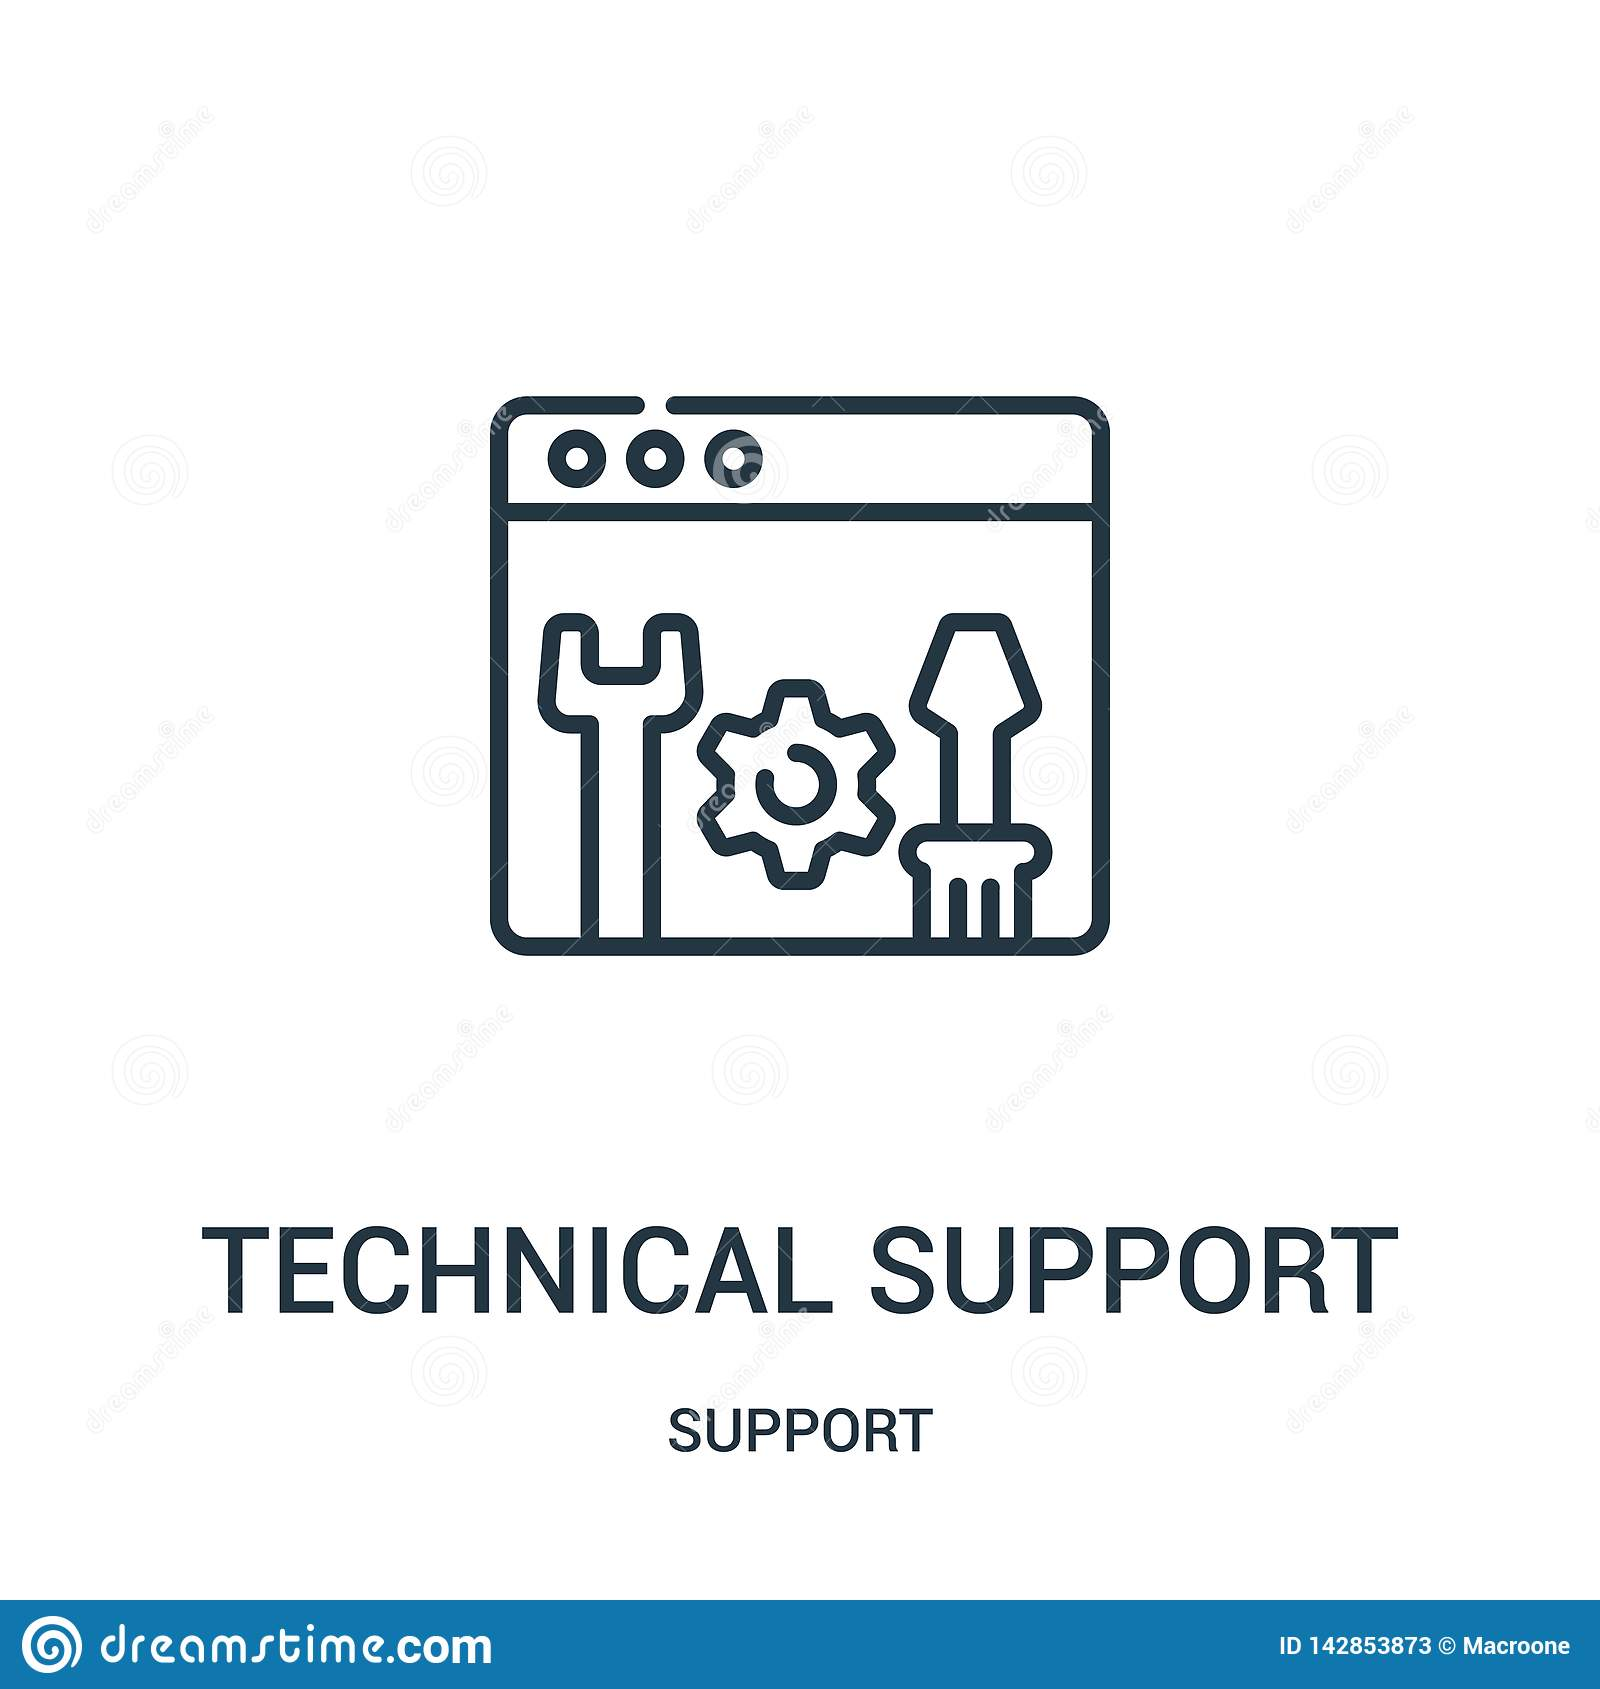 technical support icon vector from support collection. Thin line technical support outline icon vector illustration. Linear symbol